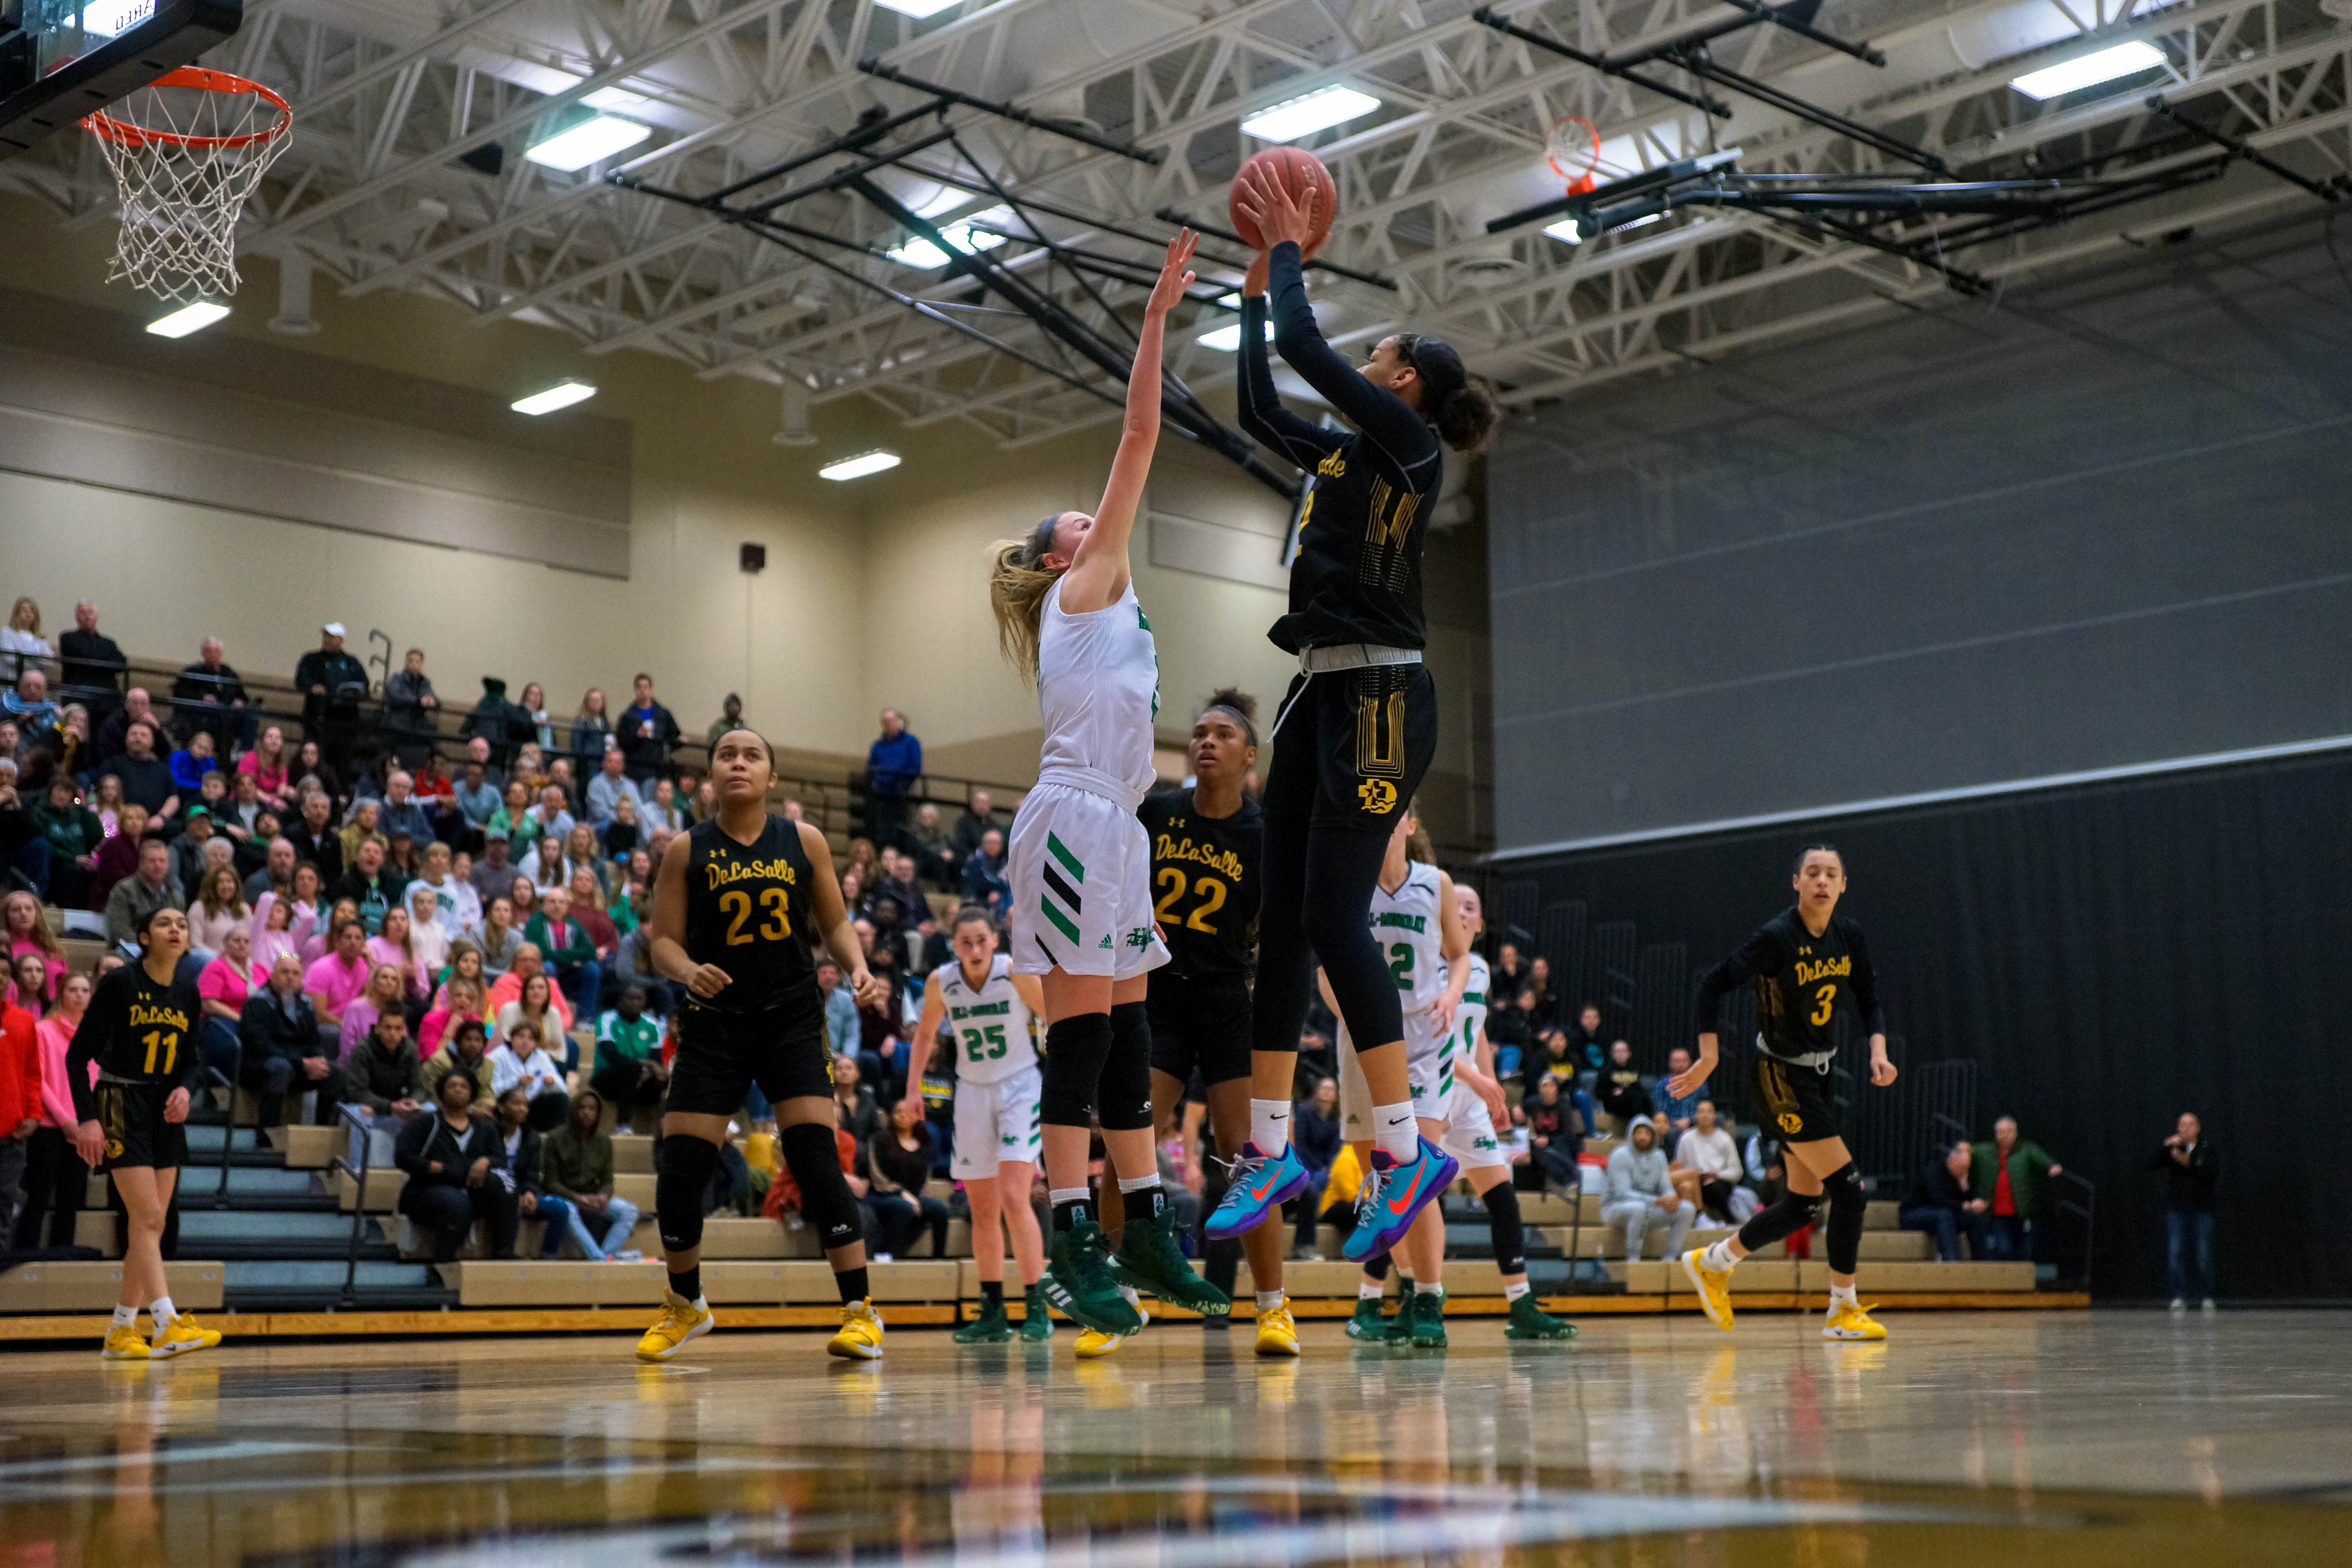 DeLaSalle took one more step closer to defending its state title from last season with a 62-31 section championship victory over Hill-Murray on March 5. Photo by Korey McDermott, SportsEngine